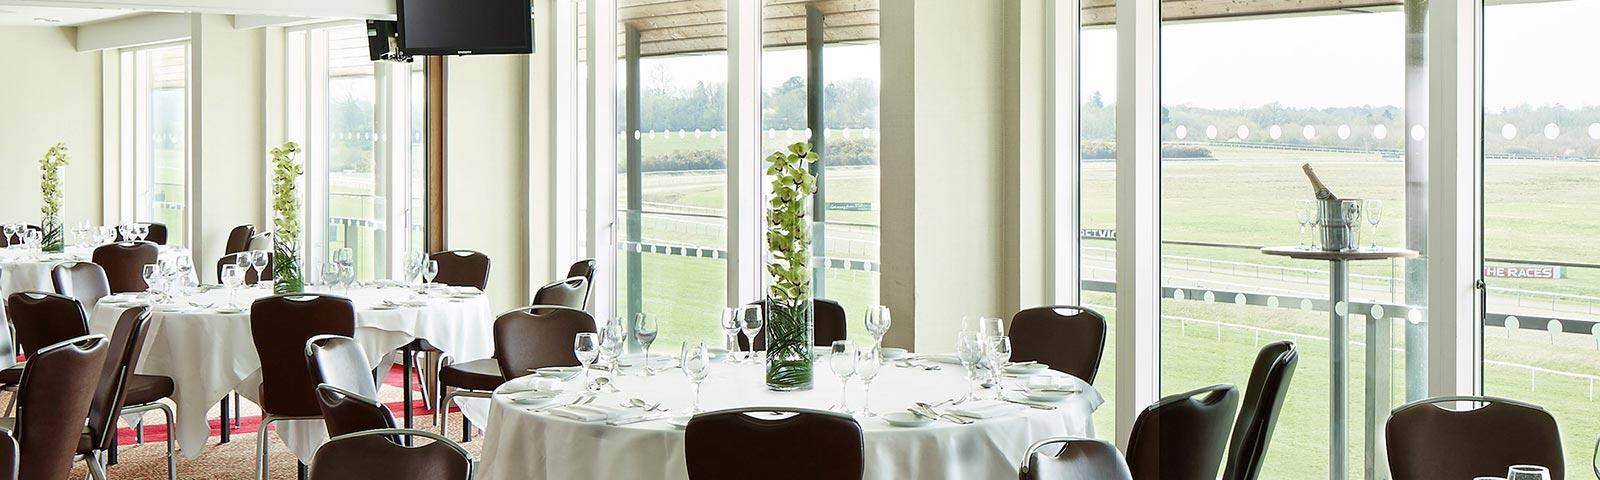 Marriott Suites at Lingfield Park overlooking the racecourse